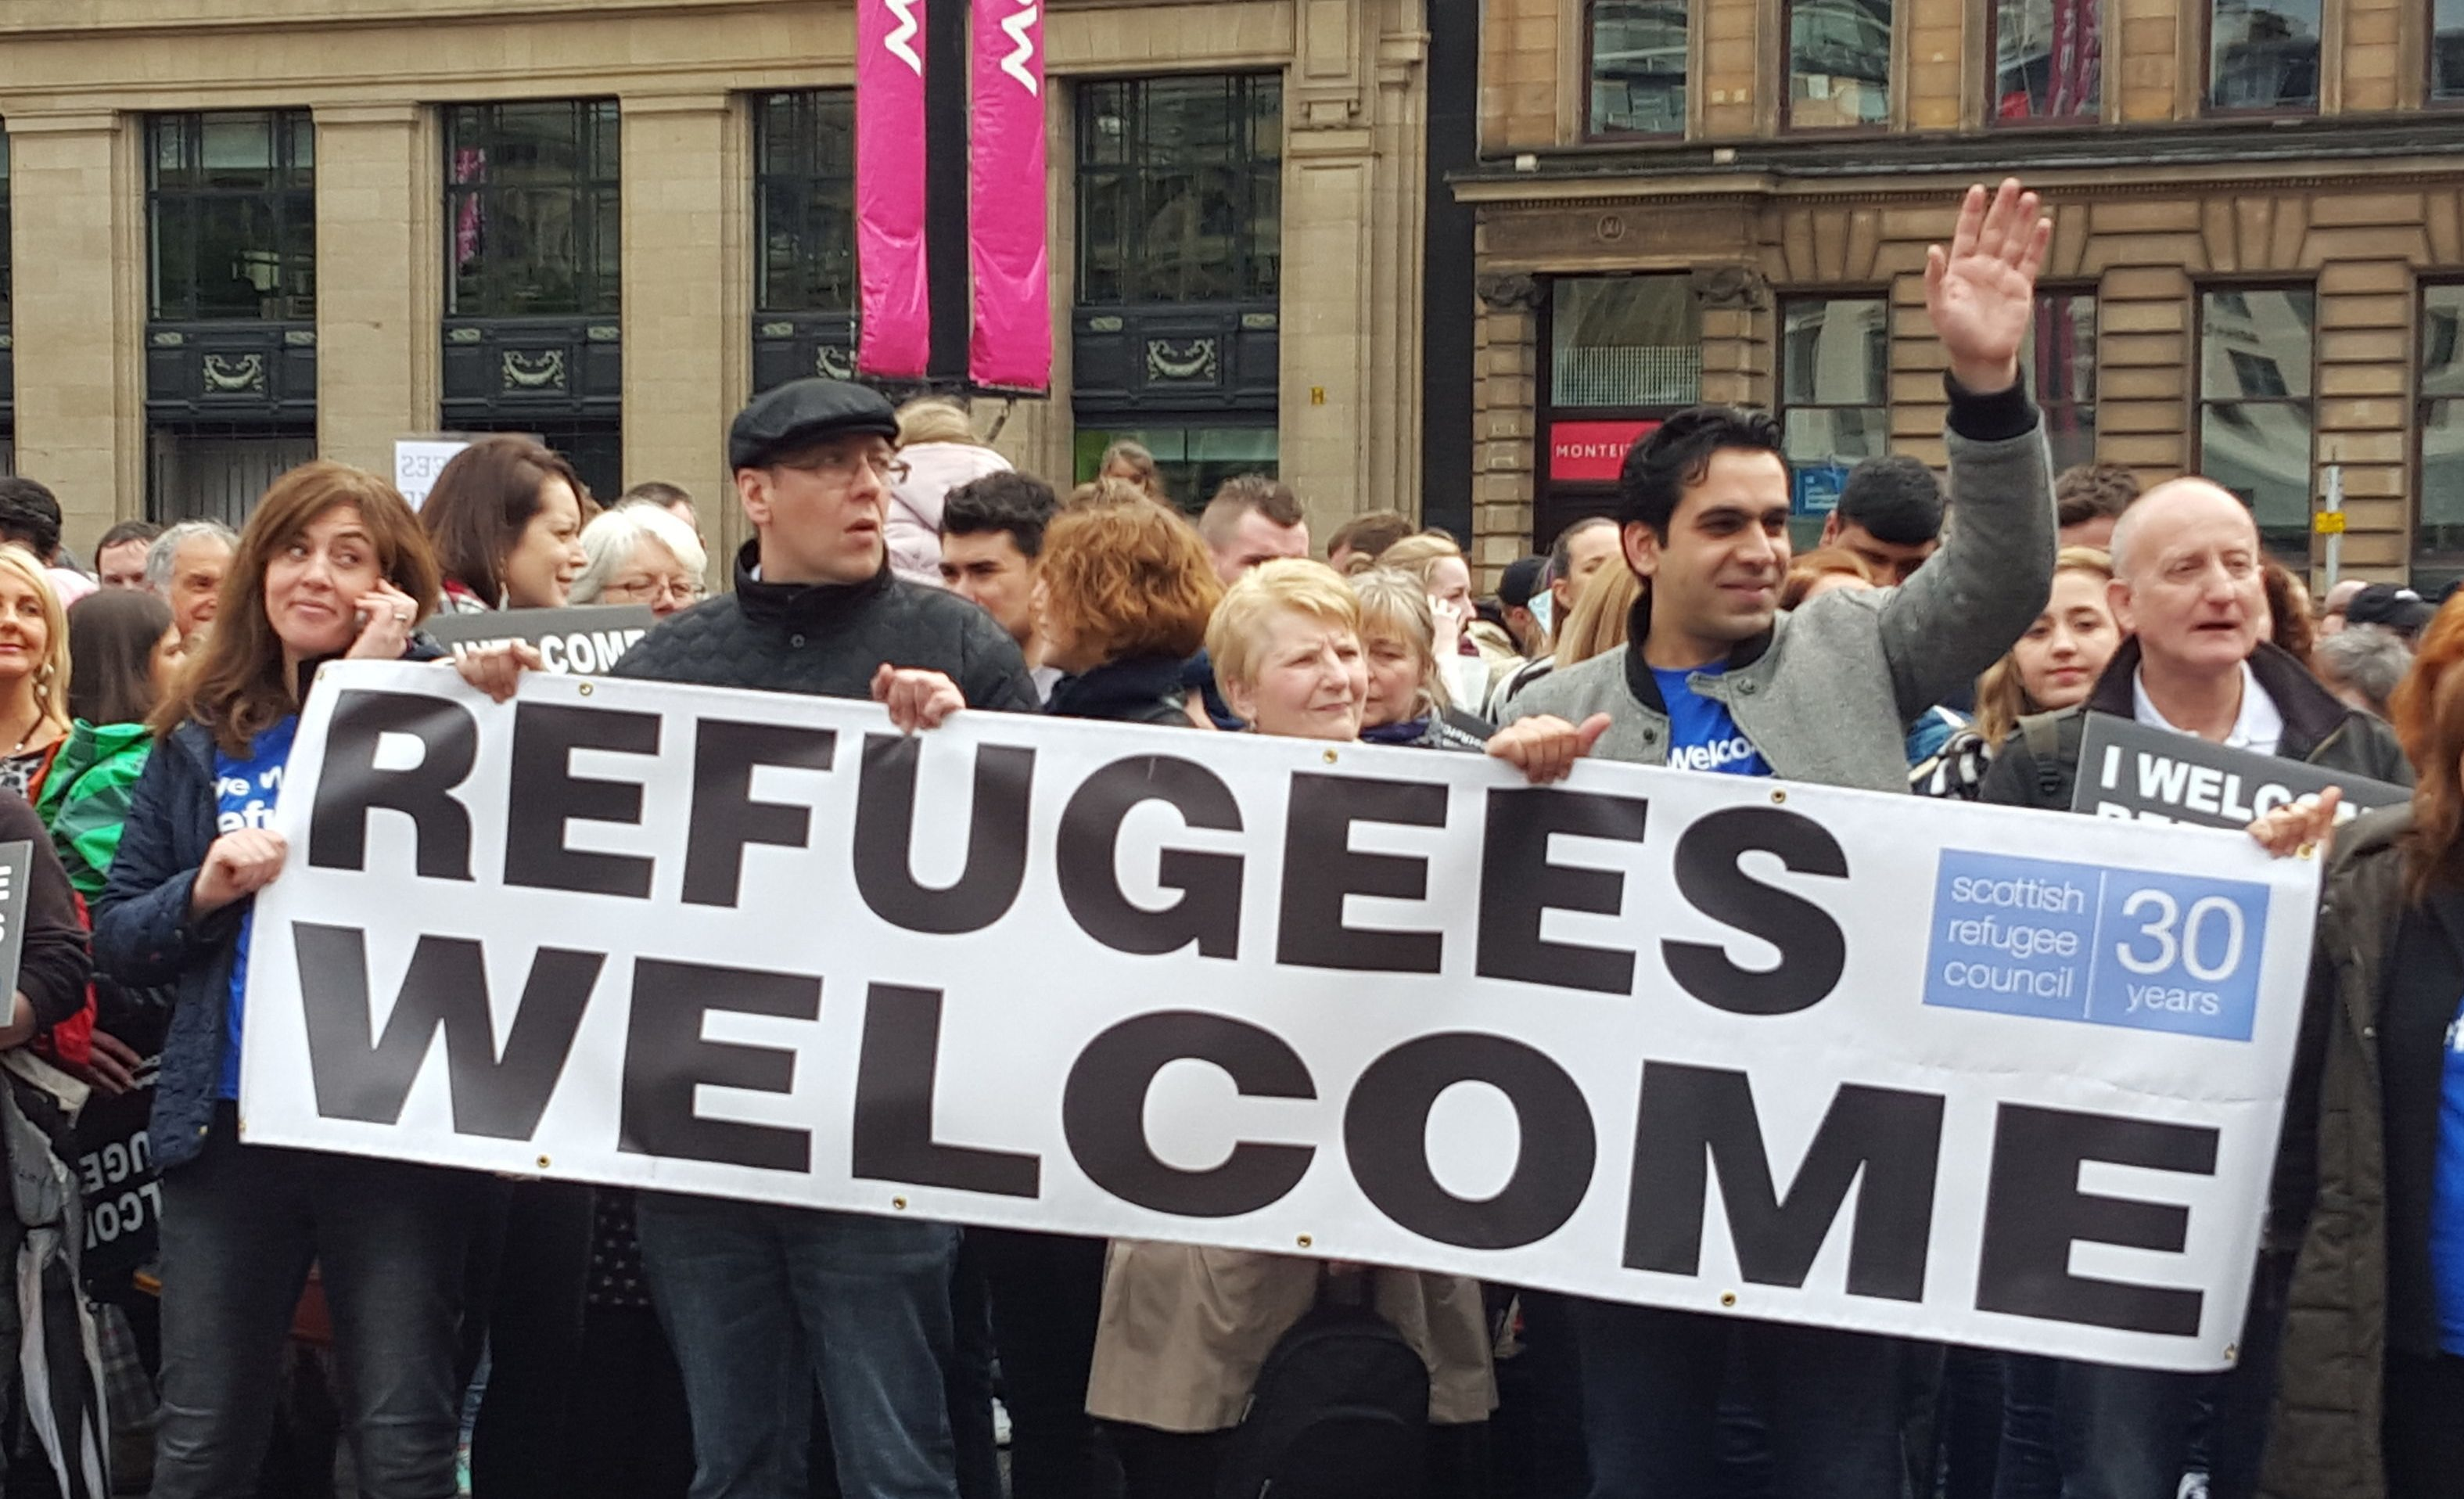 Members of the Scottish public carry a banner supporting the effort to accommodate refugees.